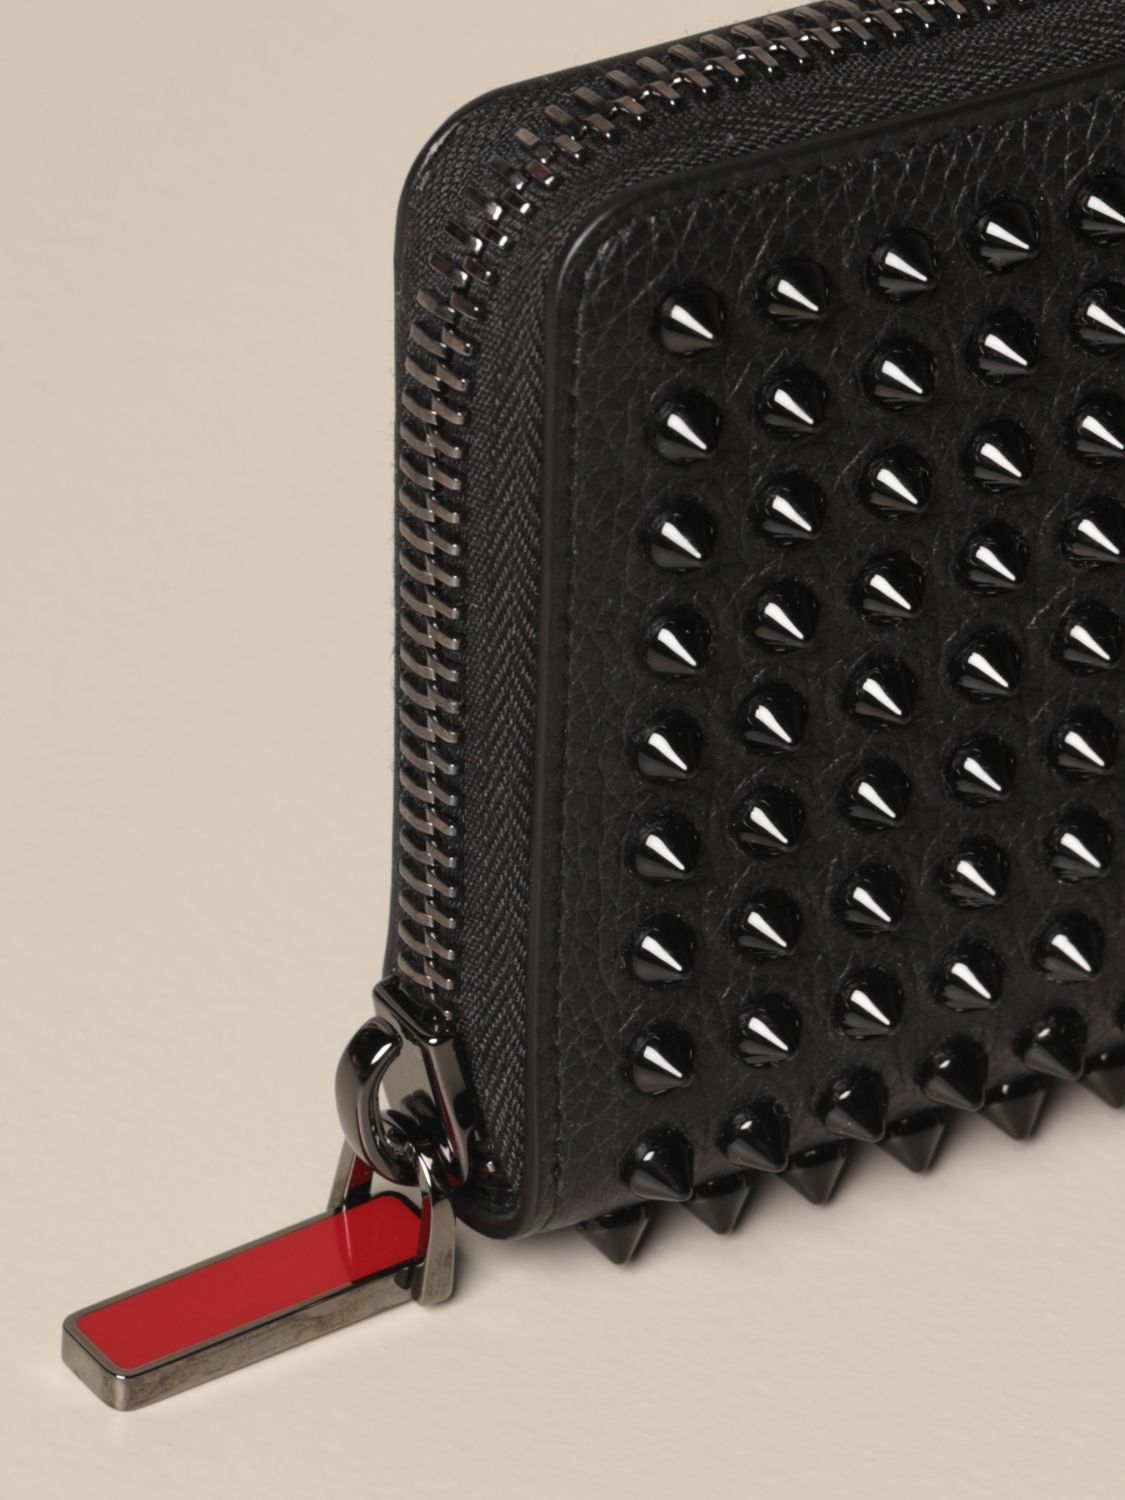 Wallet Christian Louboutin: Panettone Christian Louboutin wallet with all over studs black 4